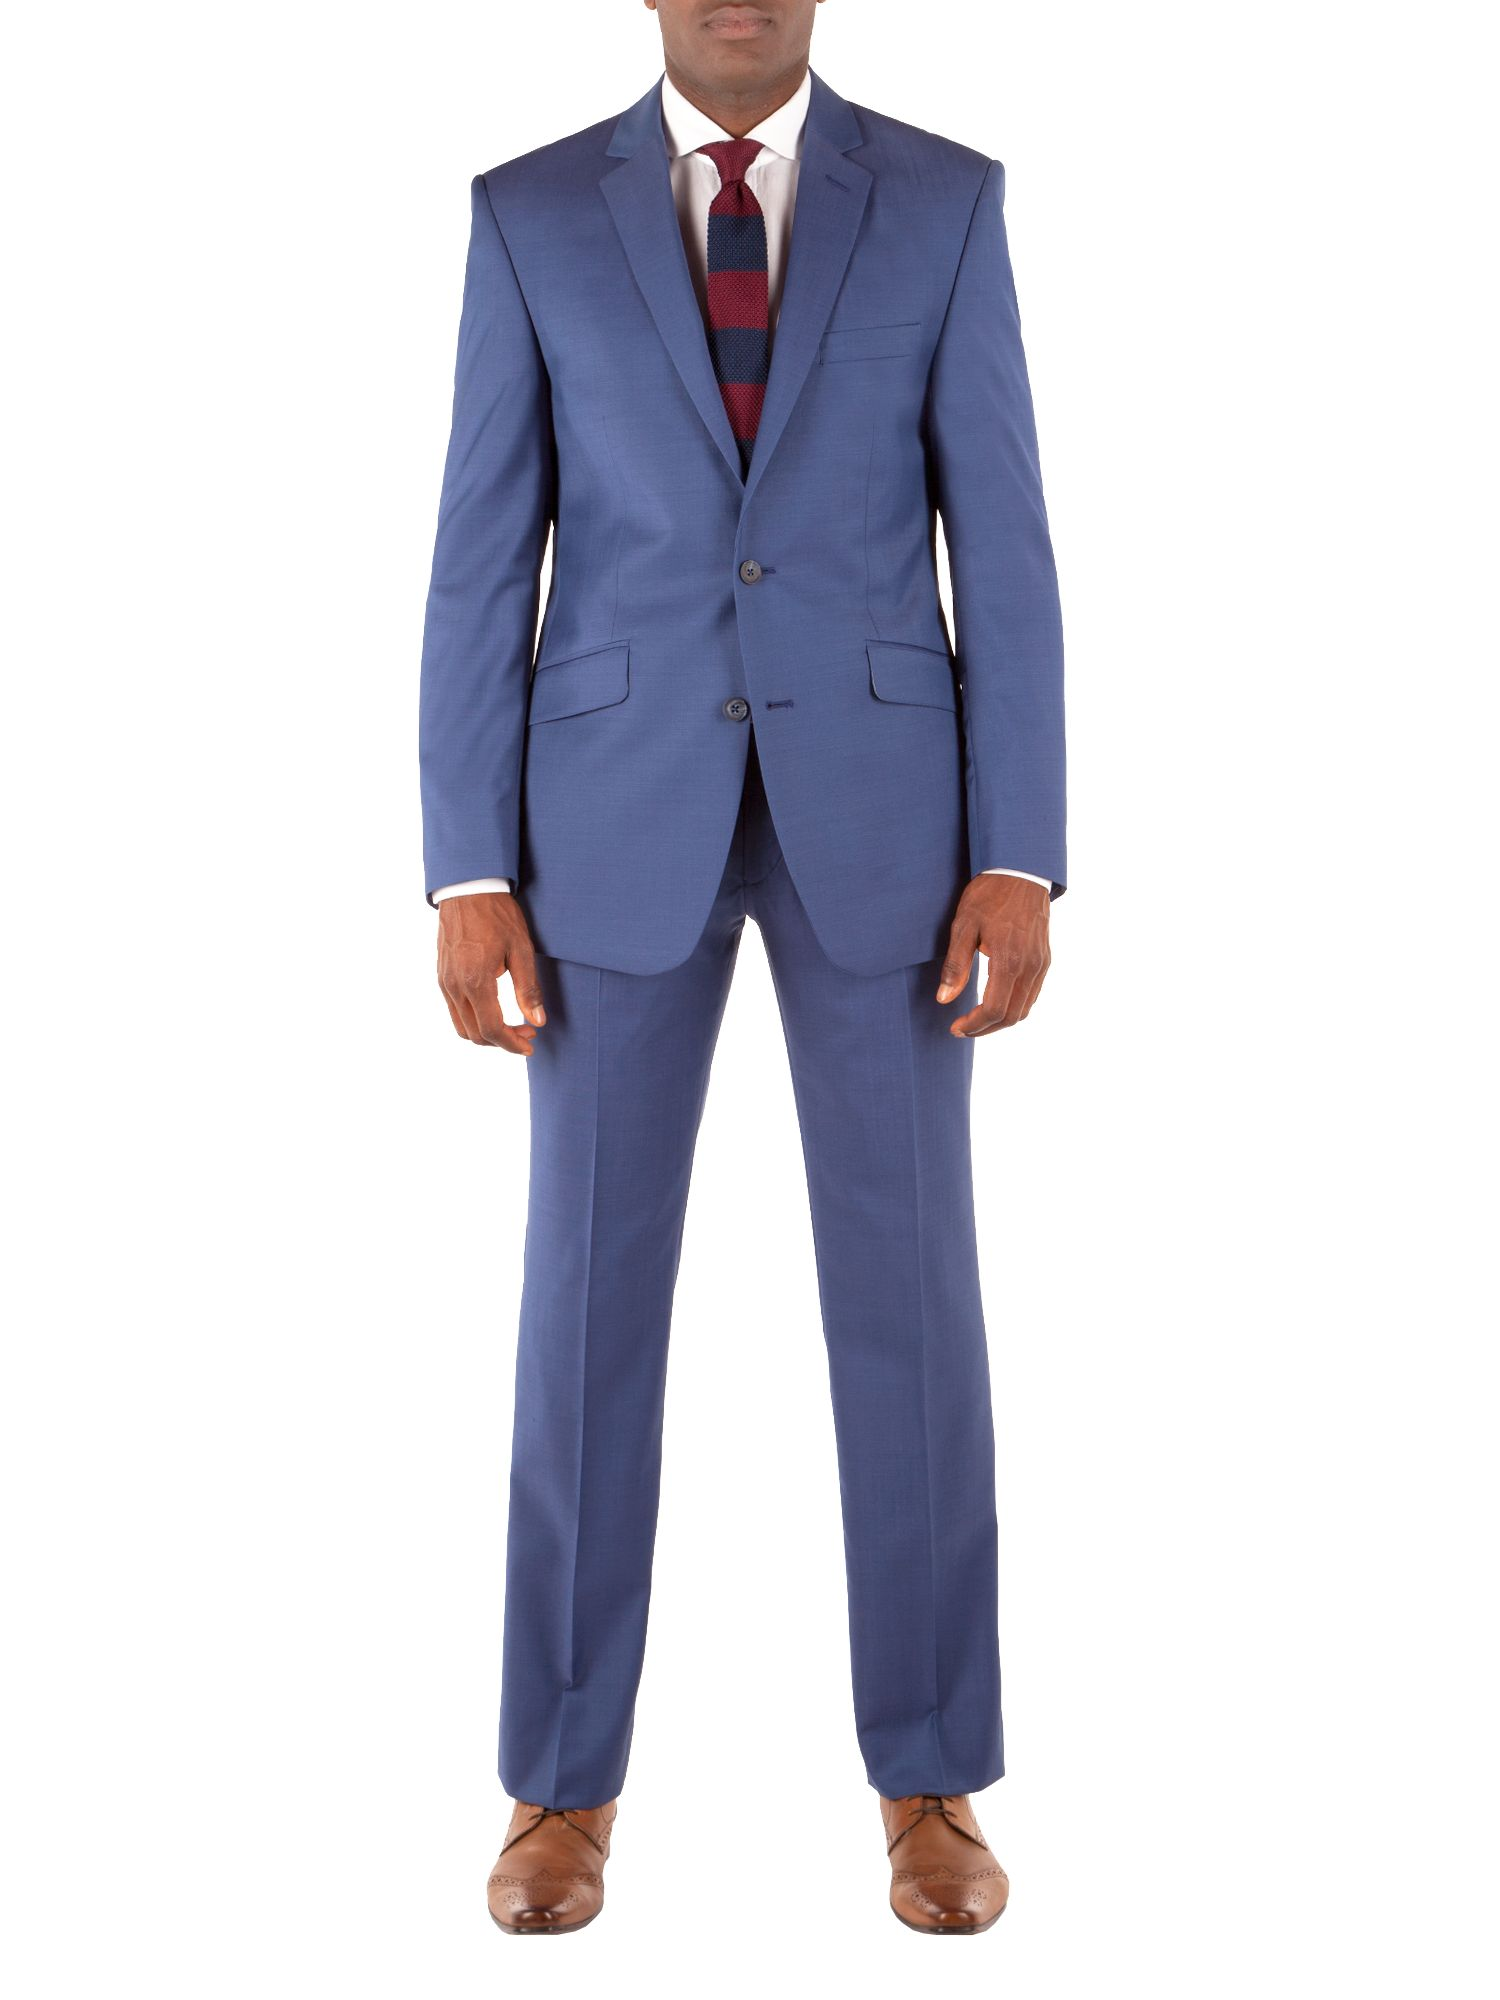 Heather notch lapel suit